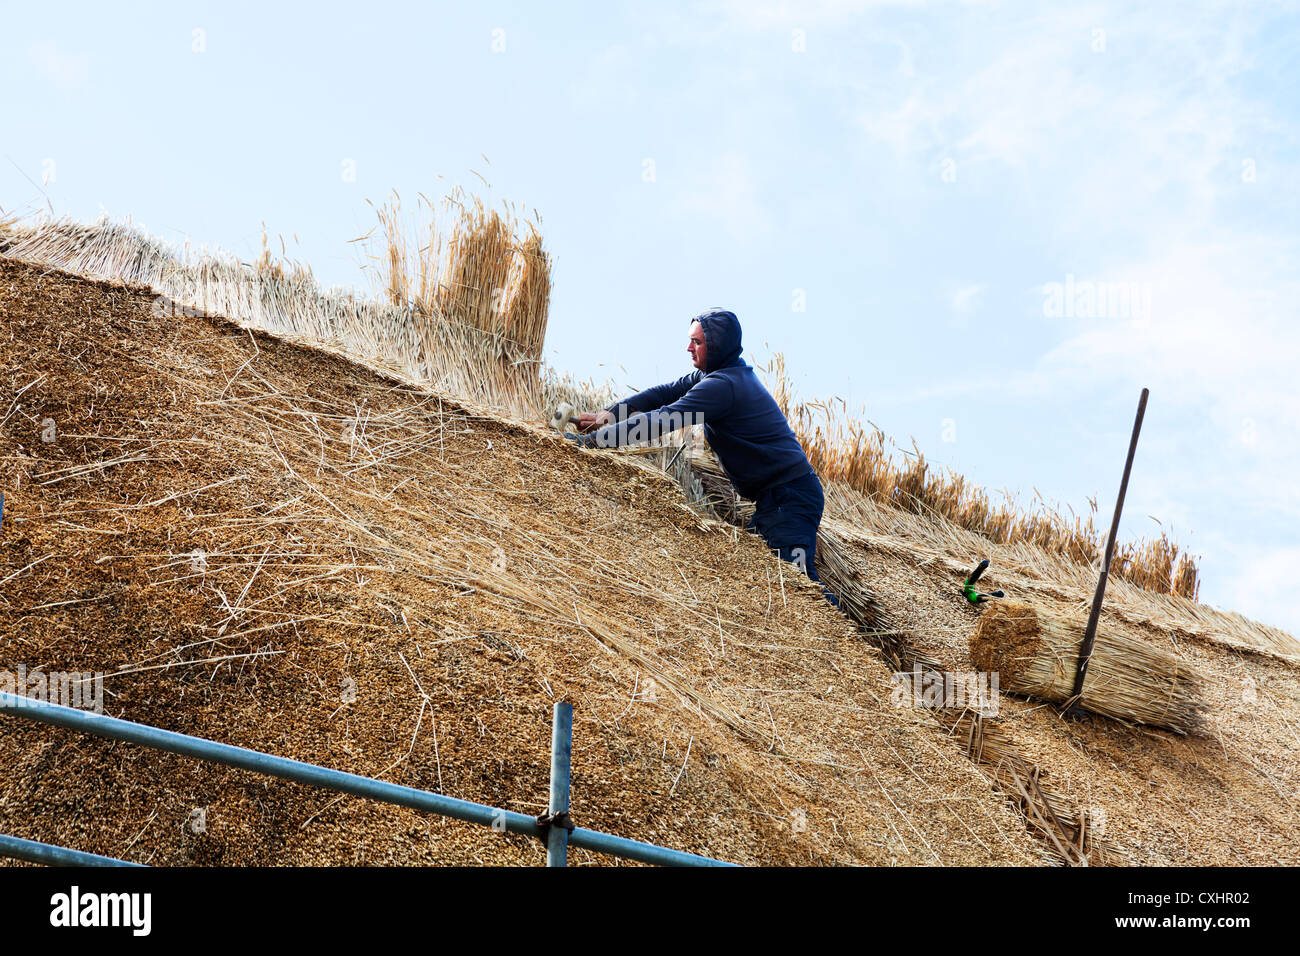 Man thatching house roof with straw workman thatcher packing straw tight to make watertight - Stock Image